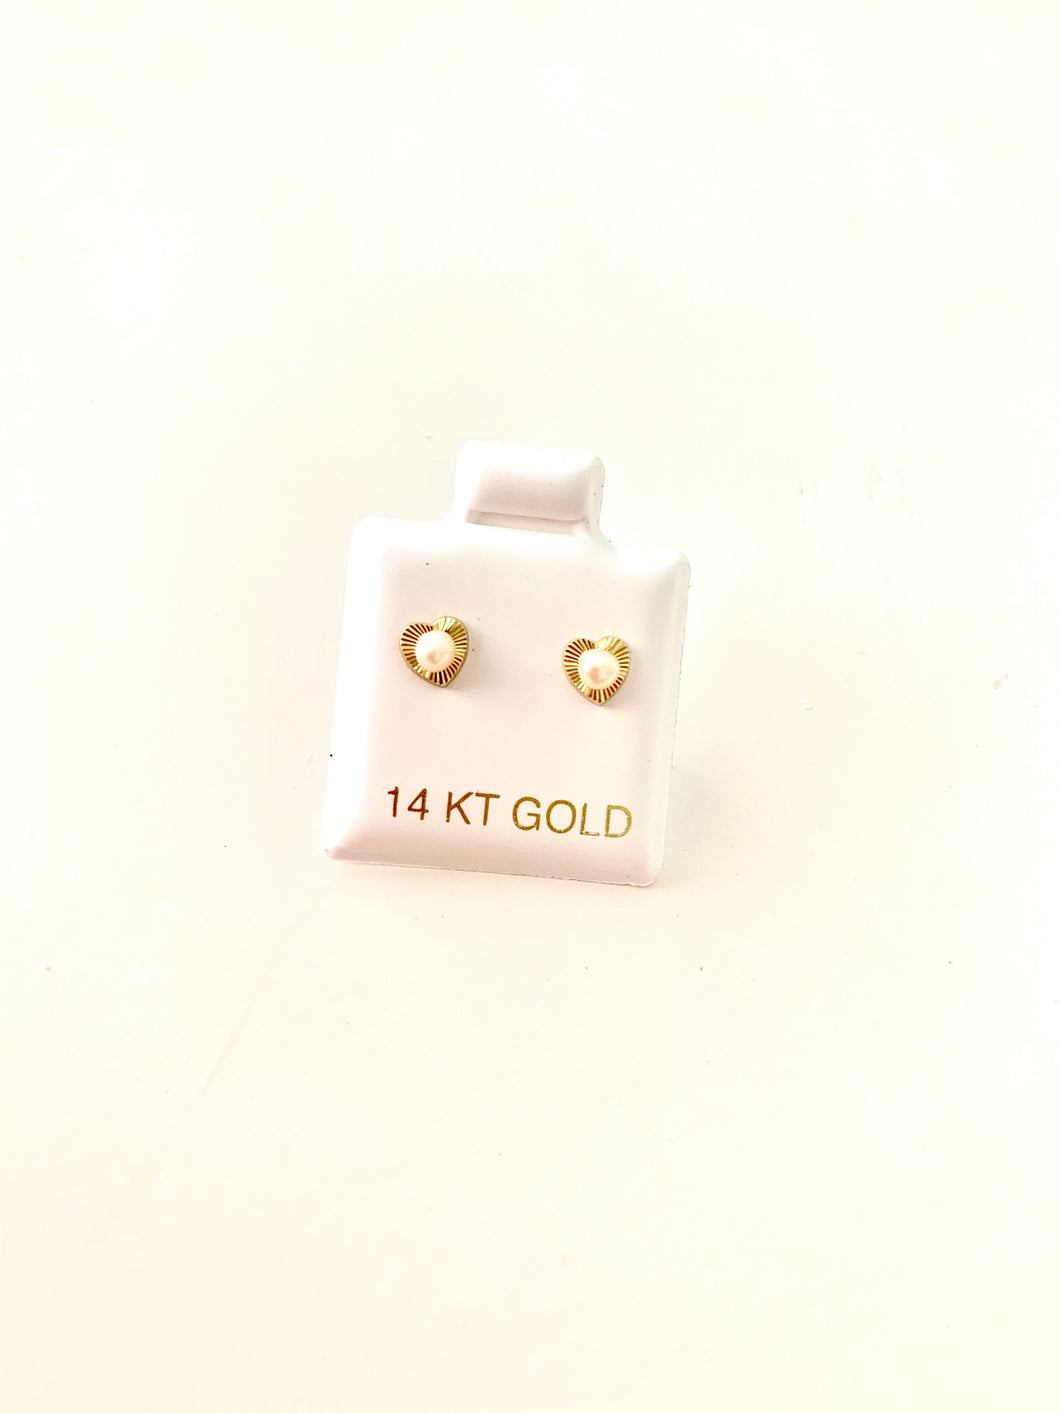 14Gold Heart with Pearls Earrings